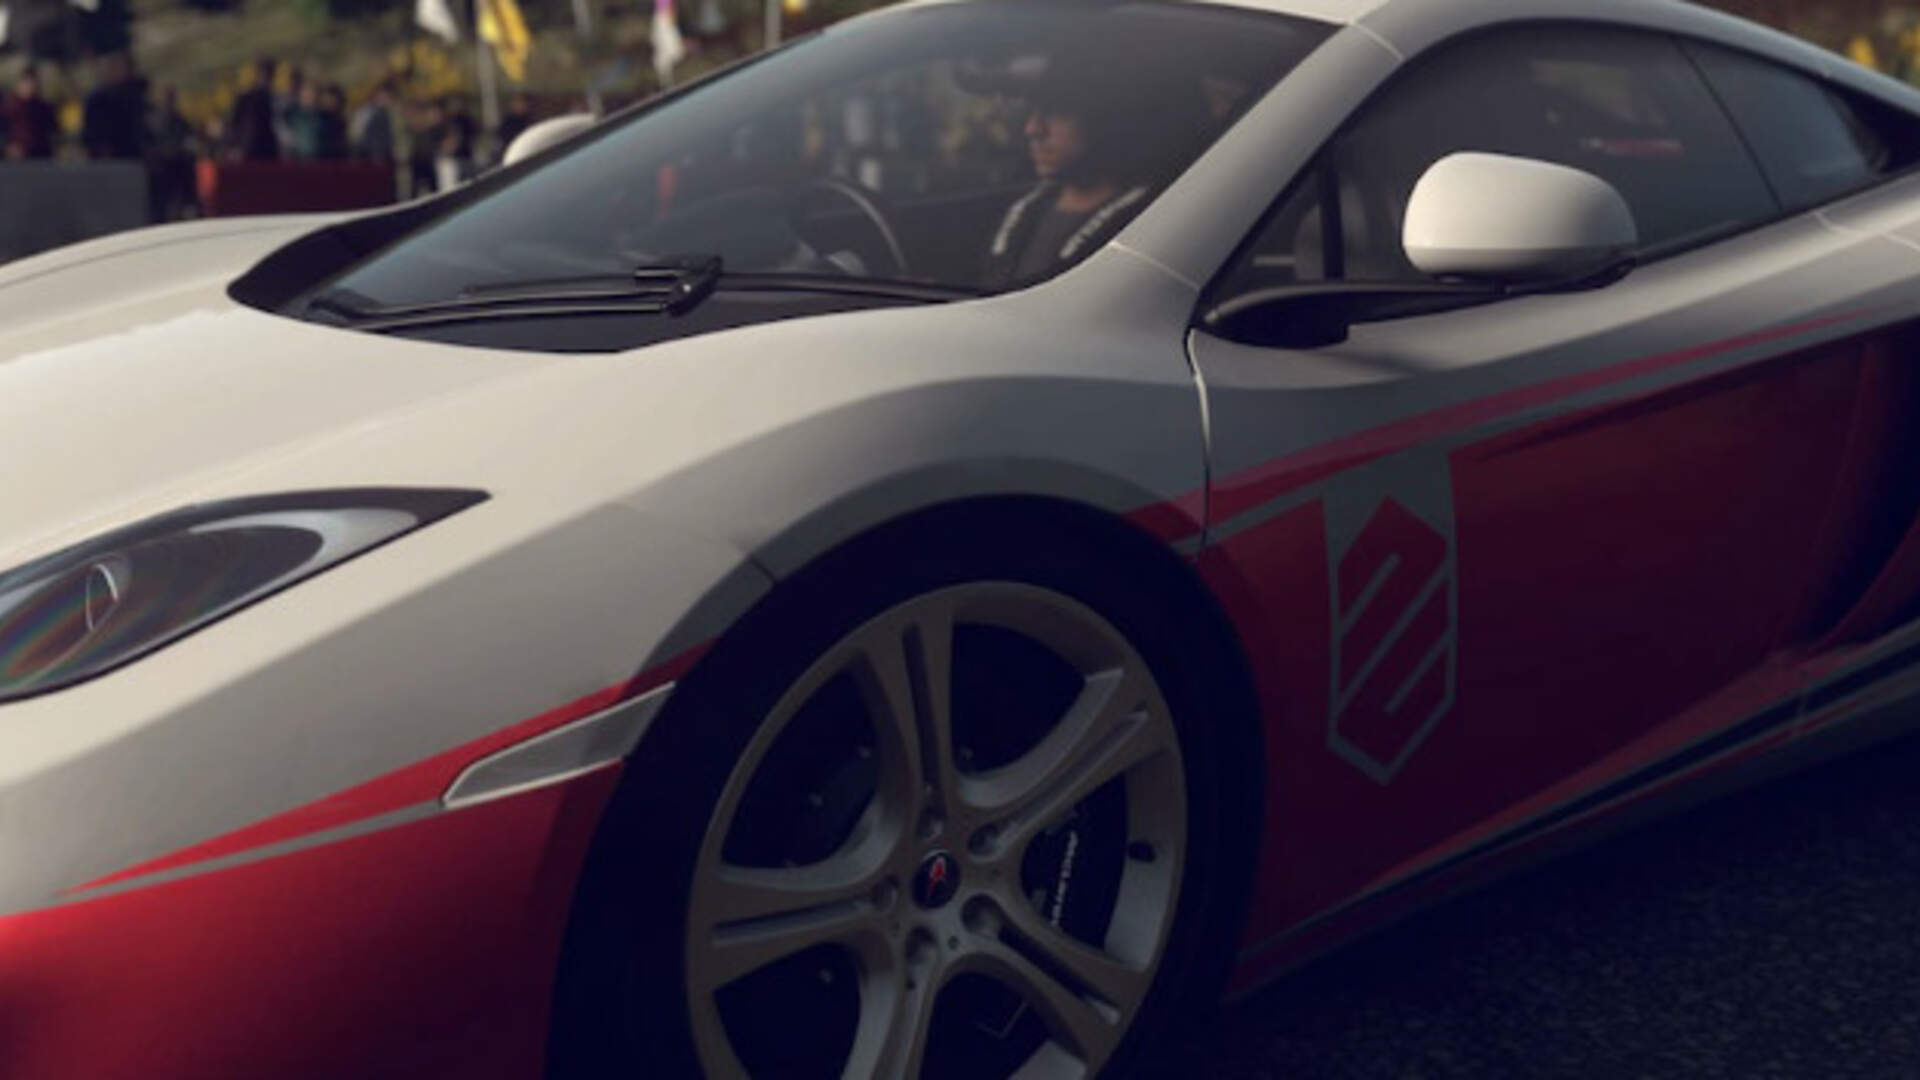 Driveclub's New Release Date on PS4 is October 7